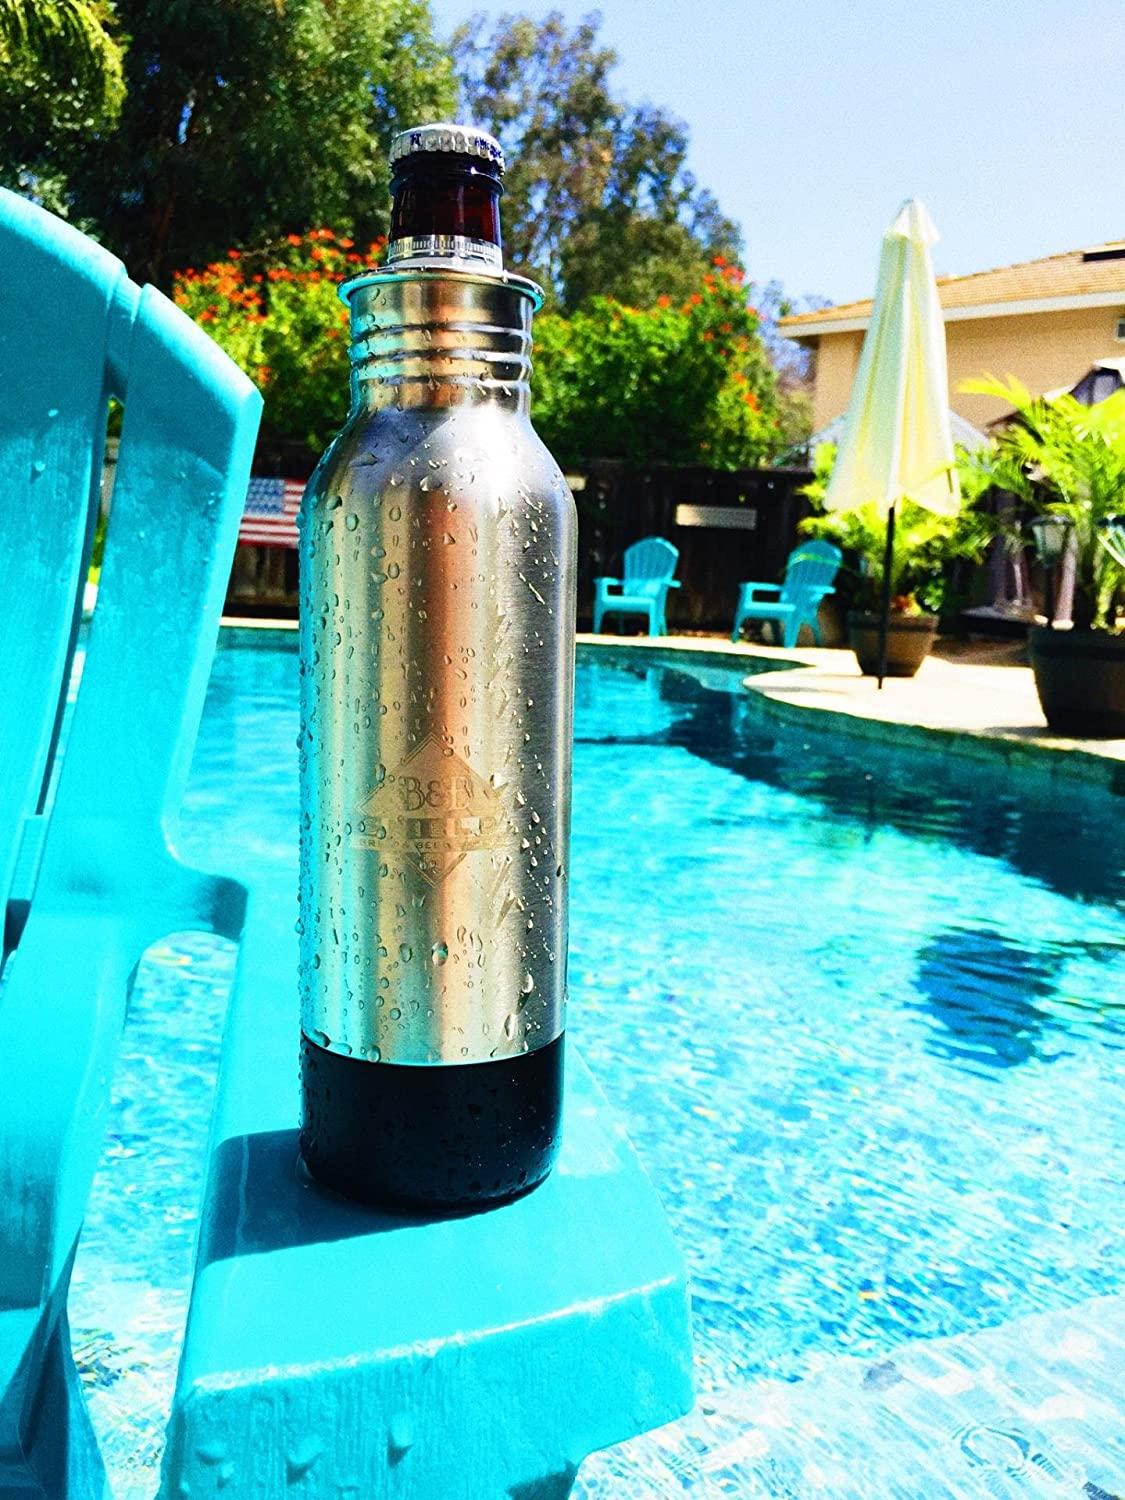 Brew & Beer Shield: Stainless Steel Beer Insulator Protect Conceal 12 ounce glass bottles. Ideal beer lover gift. Perfect for Pool Spa Beach Tailgating Beer Bottle Holder Keeper My Home Tavern